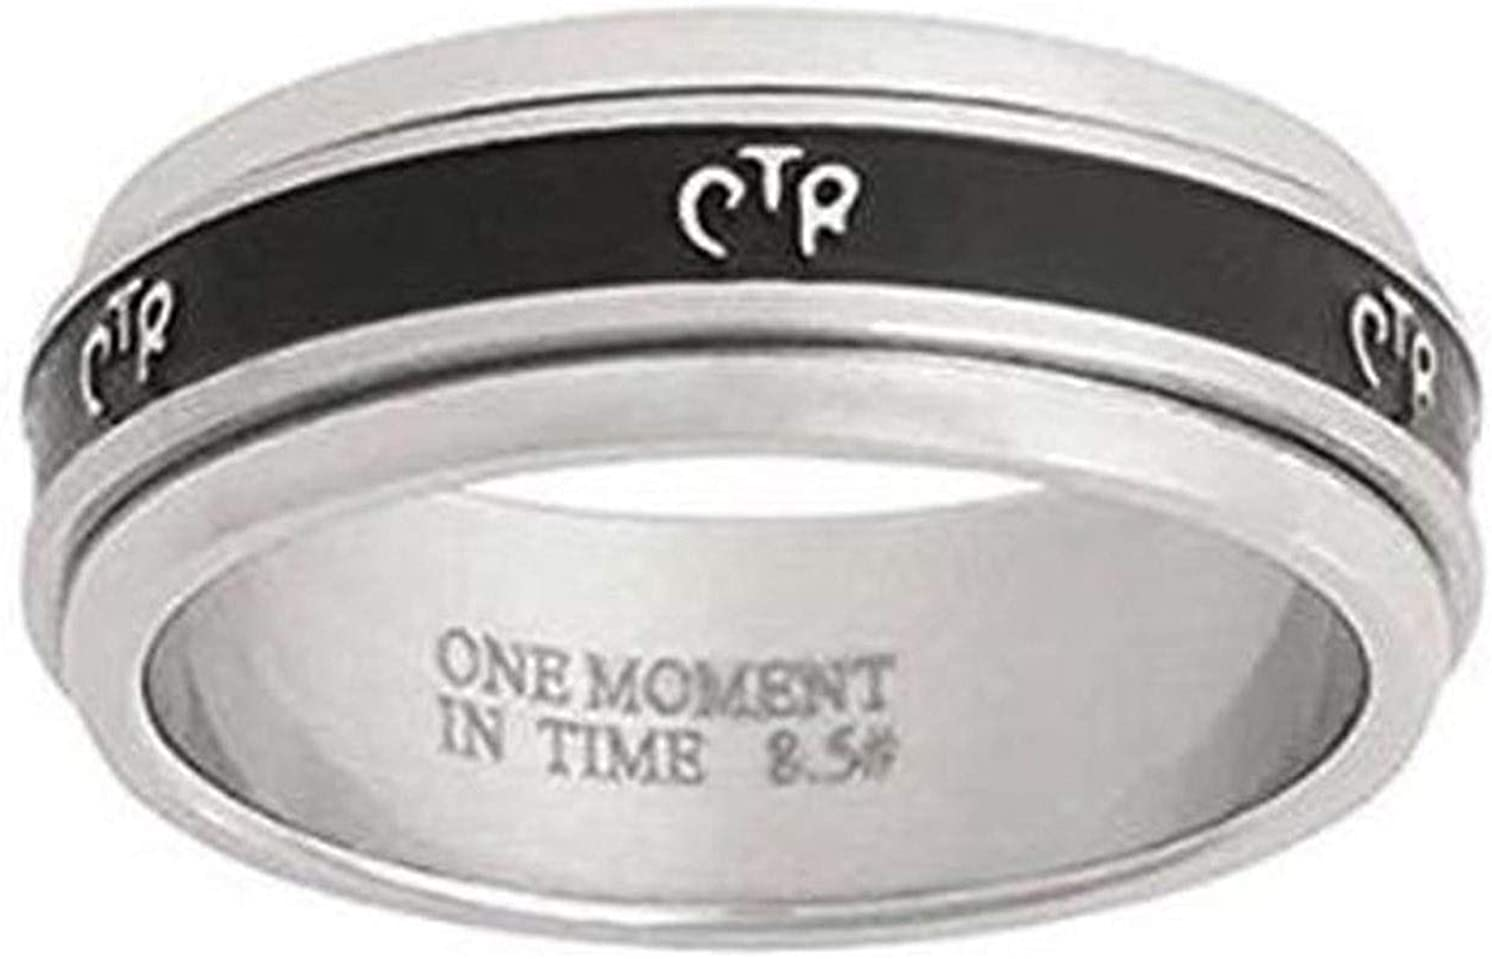 One Moment In Time J37 Size 5-10 Wide Antique Black Stainless Steel Spinner Handmade Ring Mormon CTR LDS